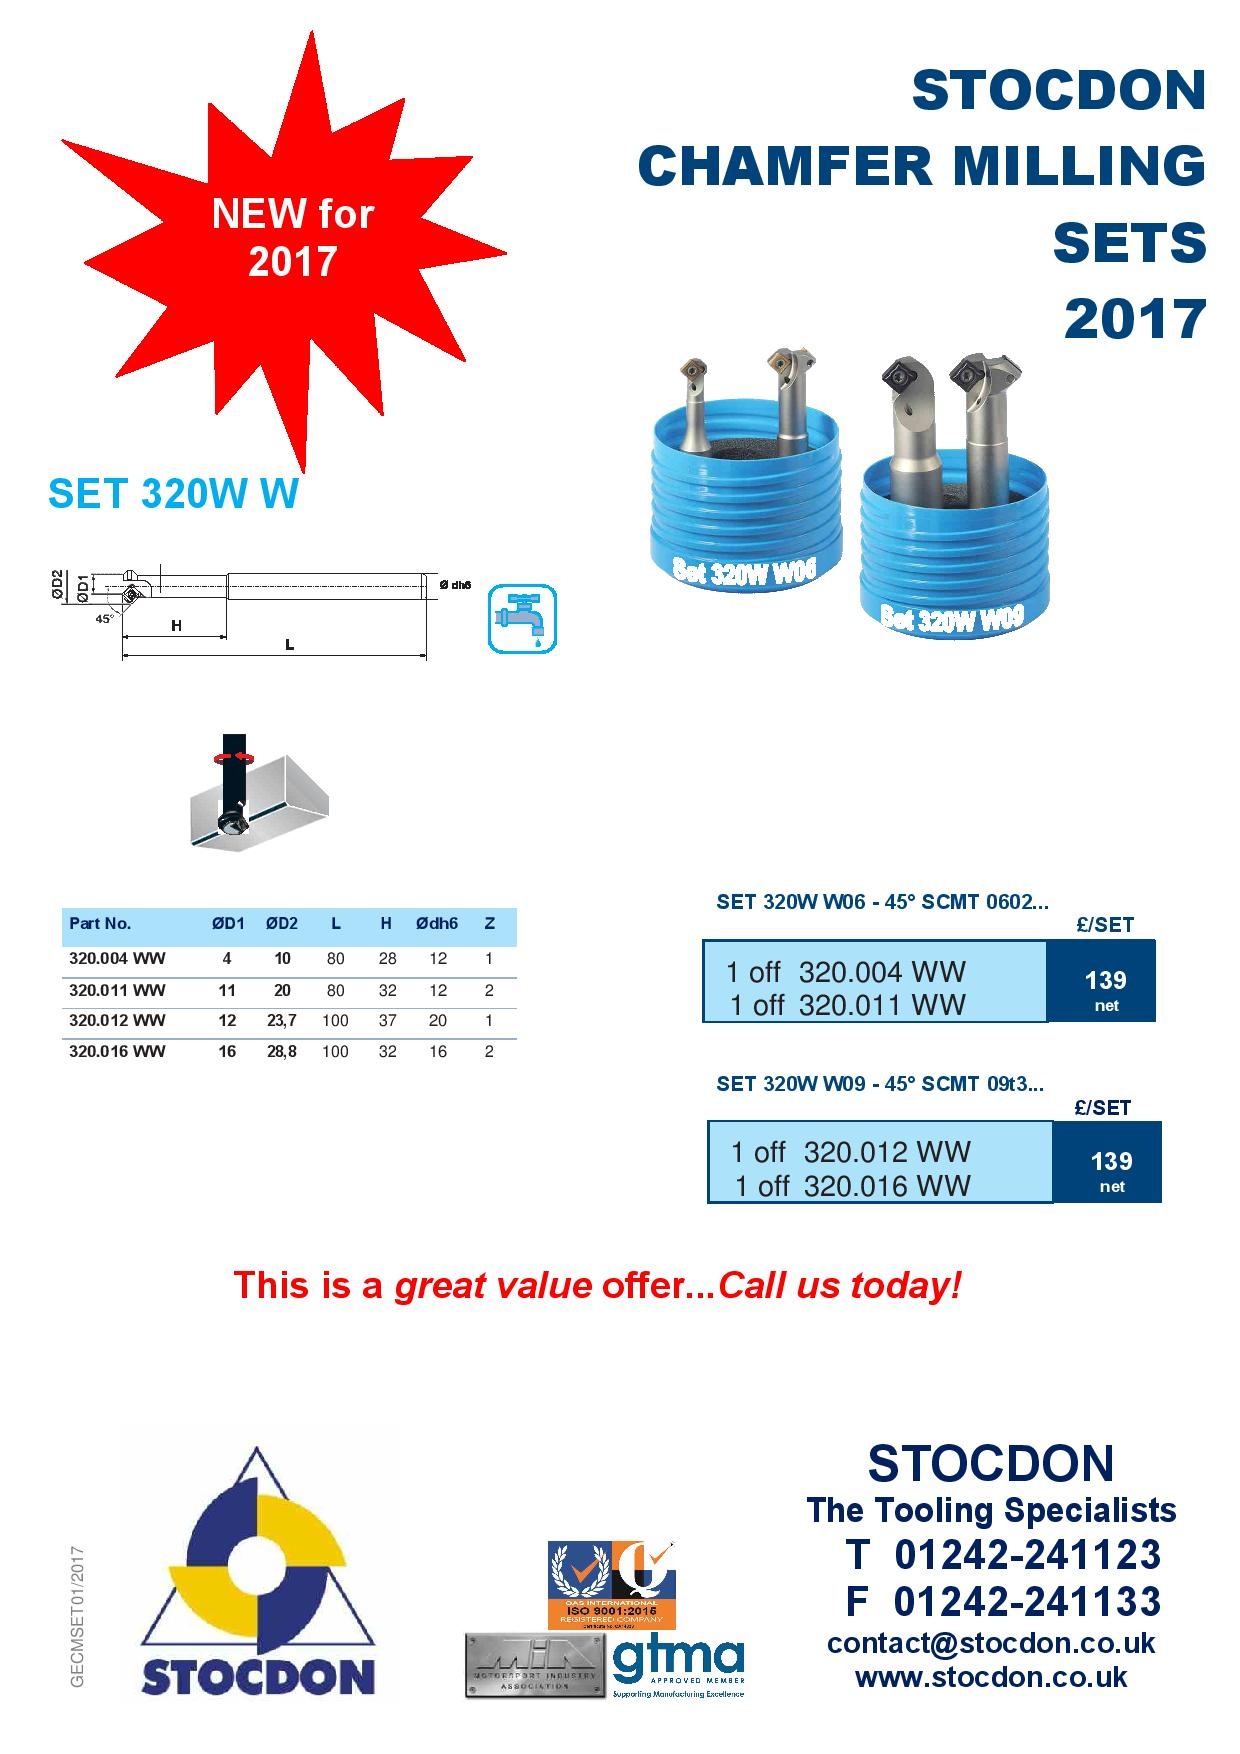 Stocdon-CHAMFER-Milling-SETS-320W-Jan-2017-page-001.jpg